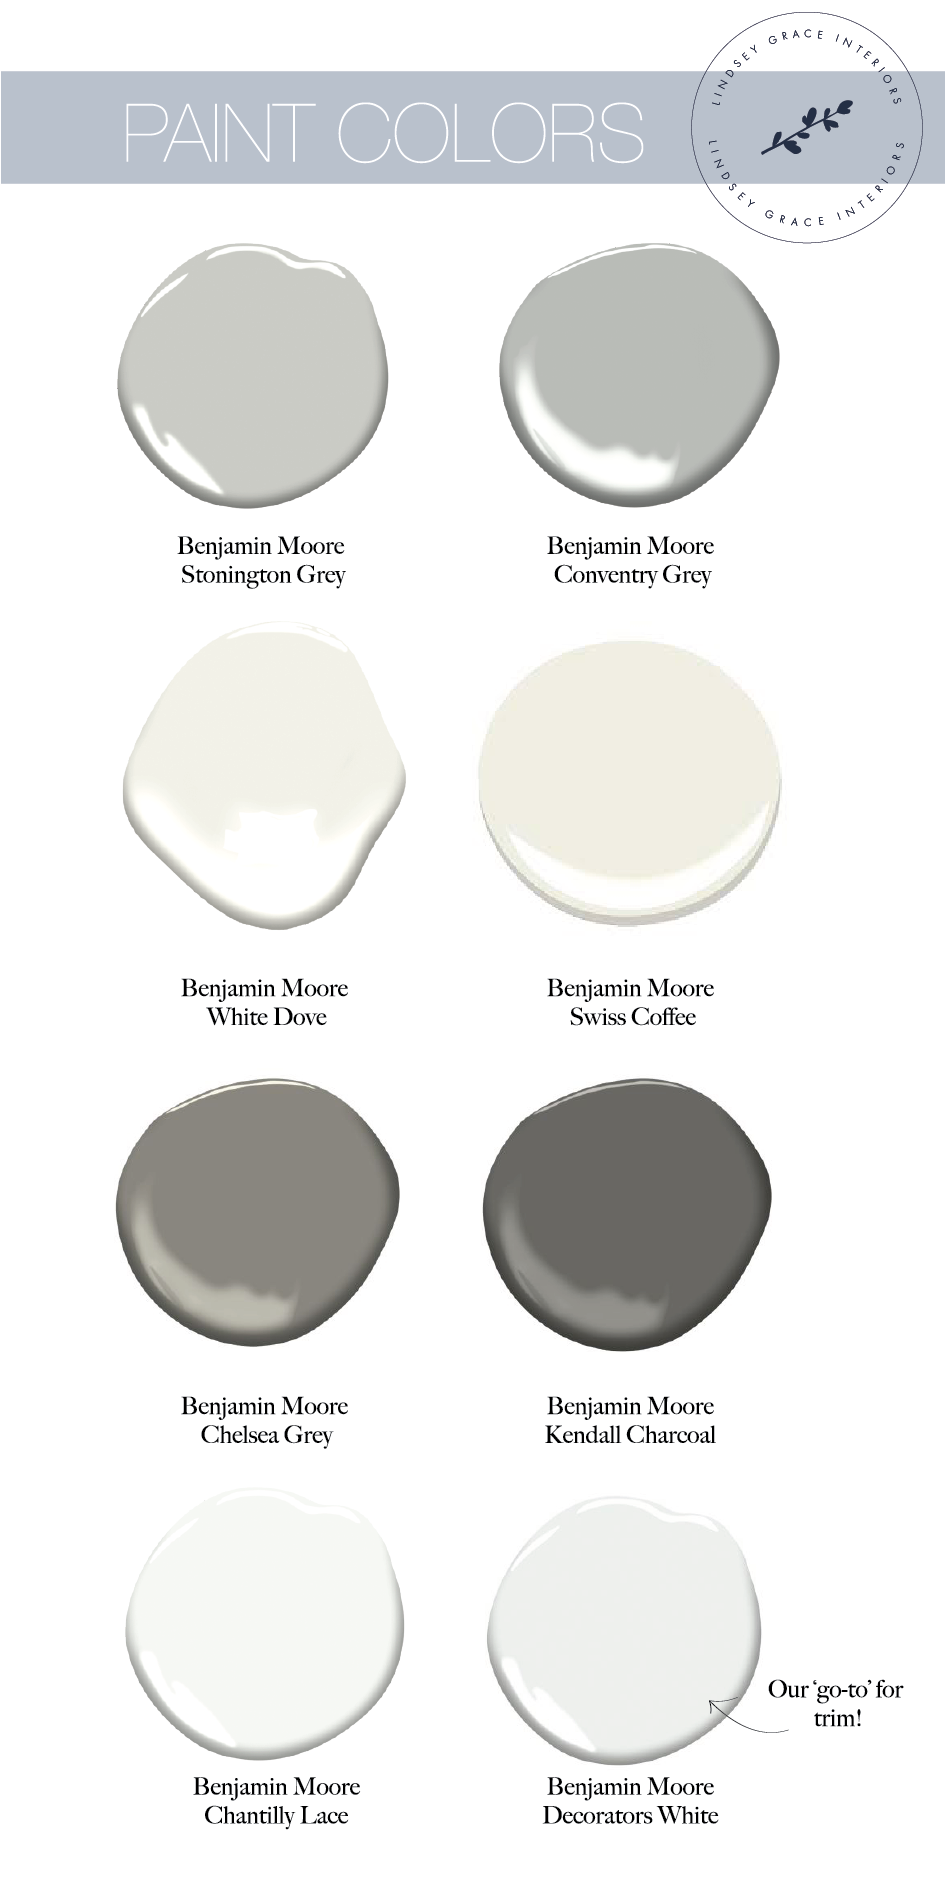 LGI Paint Colors.png